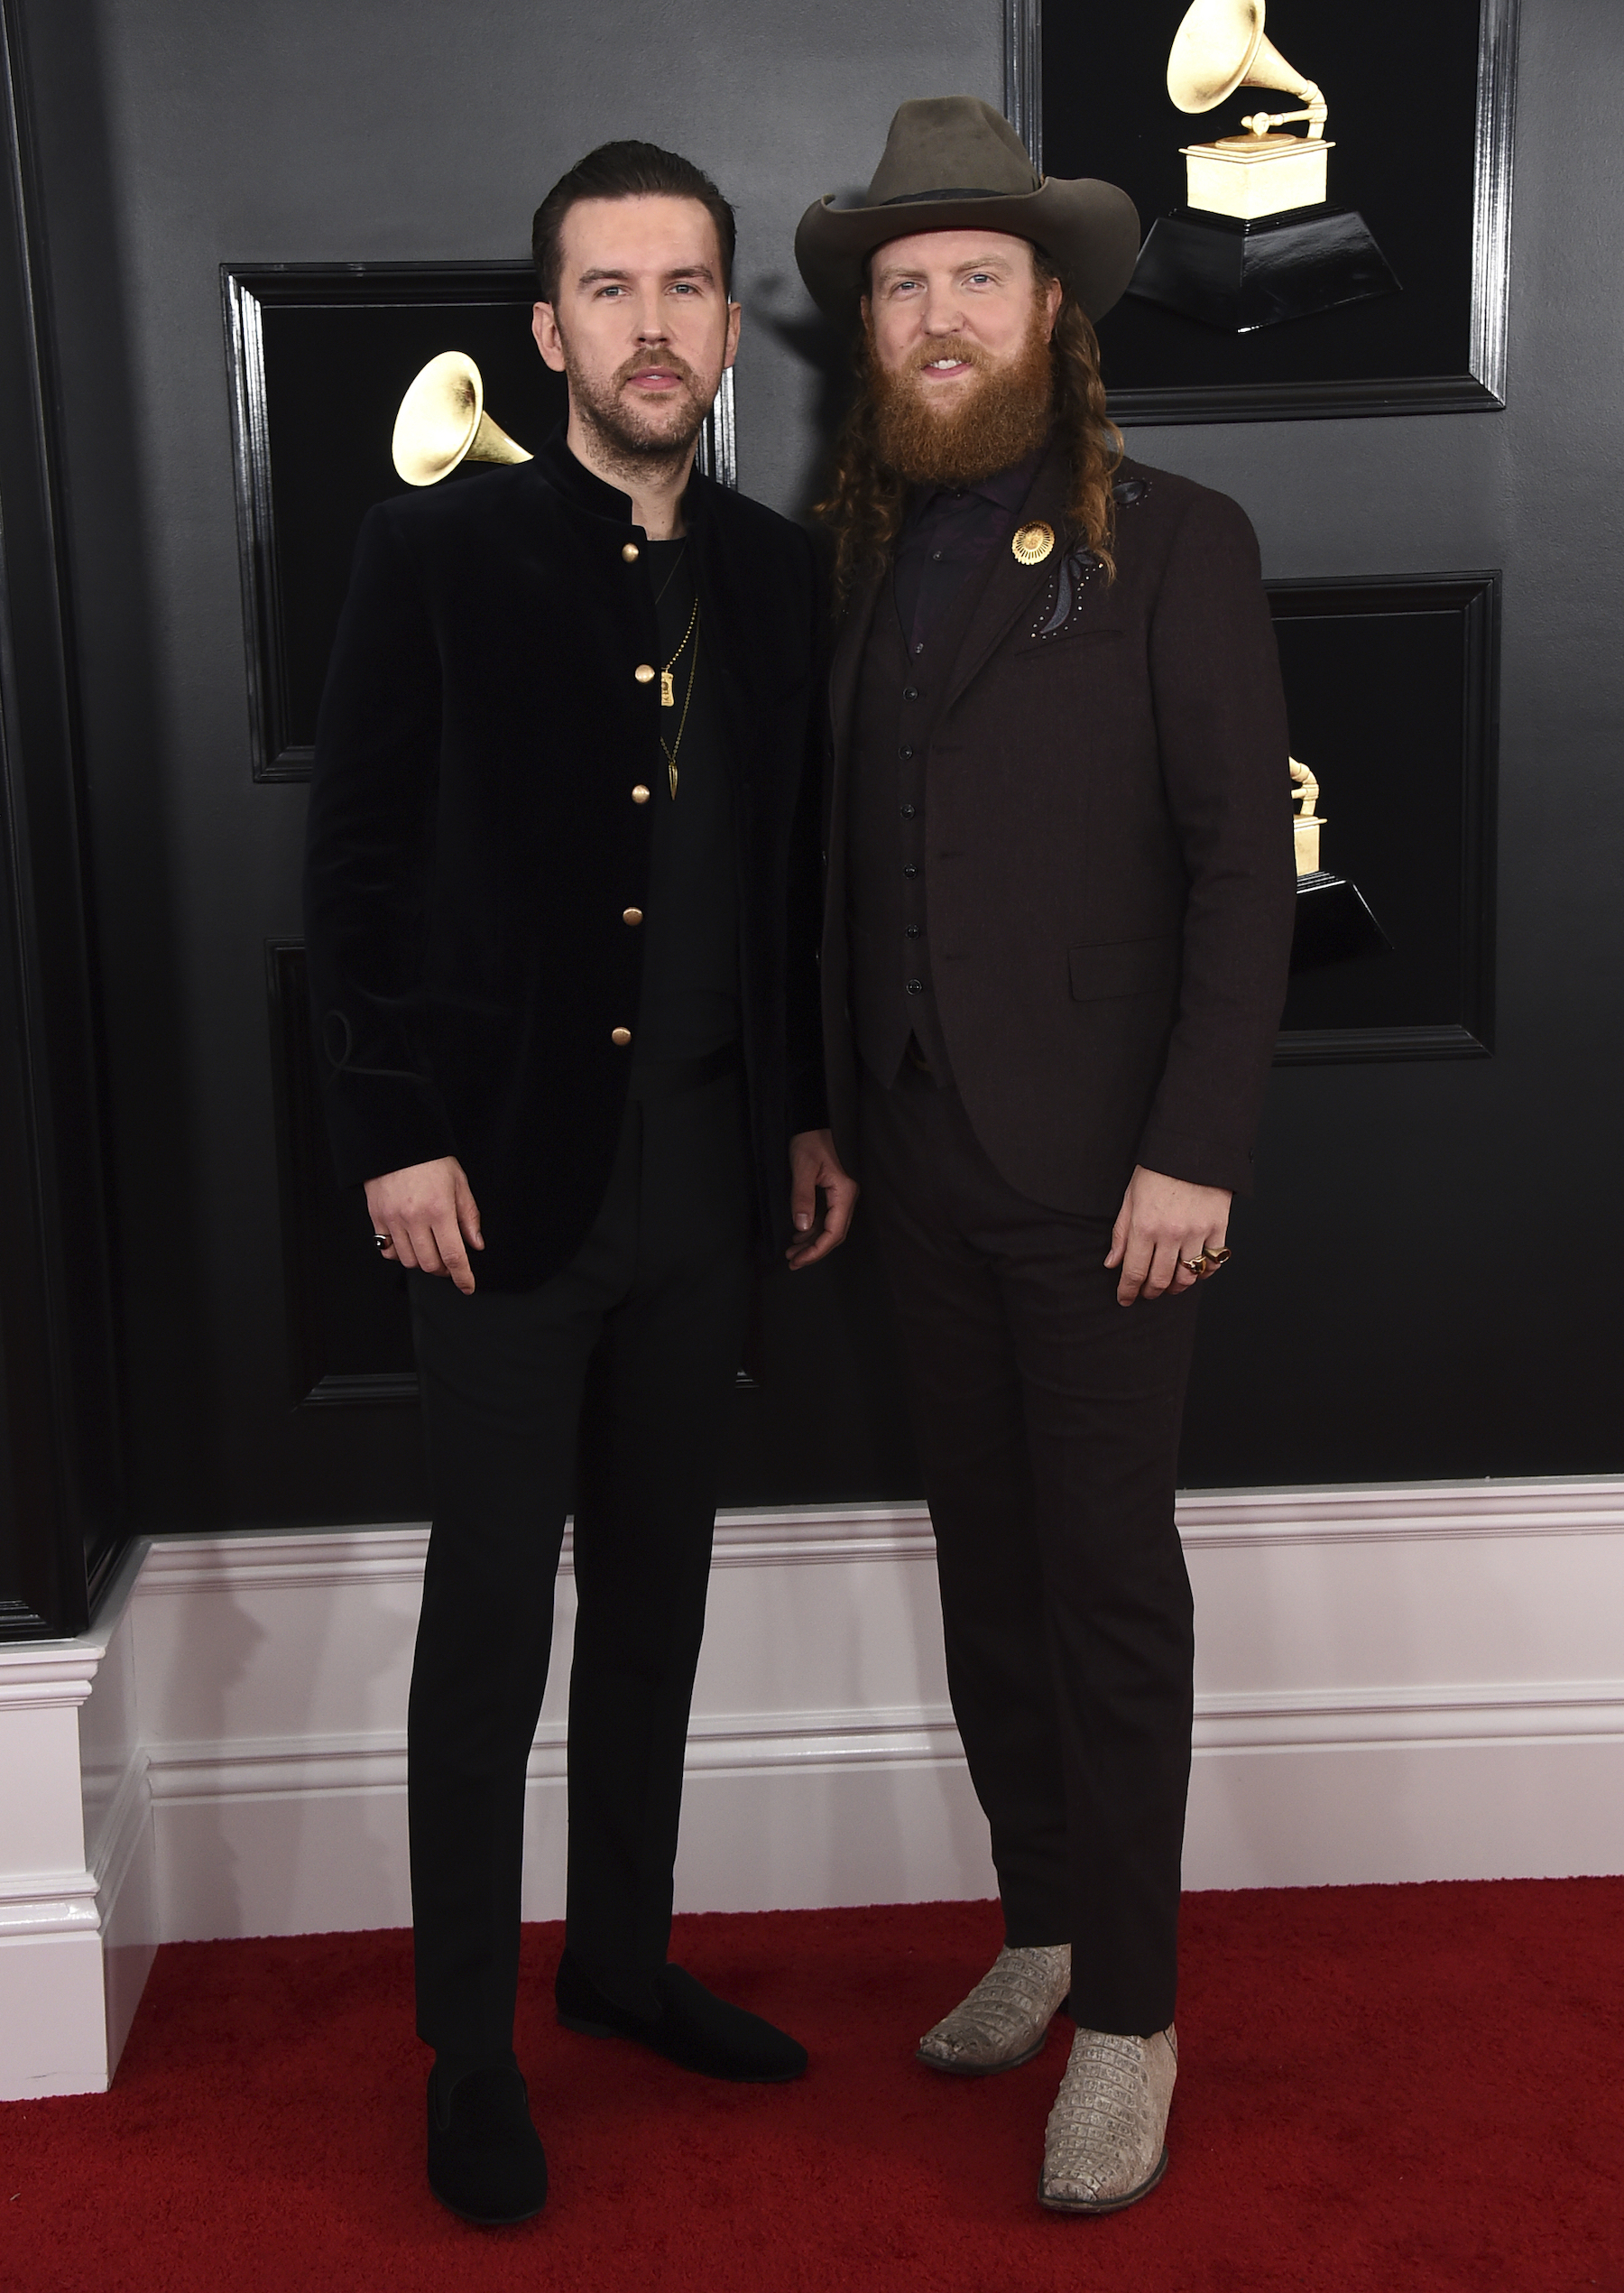 "<div class=""meta image-caption""><div class=""origin-logo origin-image ap""><span>AP</span></div><span class=""caption-text"">T.J. Osborne, left, and John Osborne of Brothers Osborne arrive at the 61st annual Grammy Awards at the Staples Center on Sunday, Feb. 10, 2019, in Los Angeles. (Jordan Strauss/Invision/AP)</span></div>"